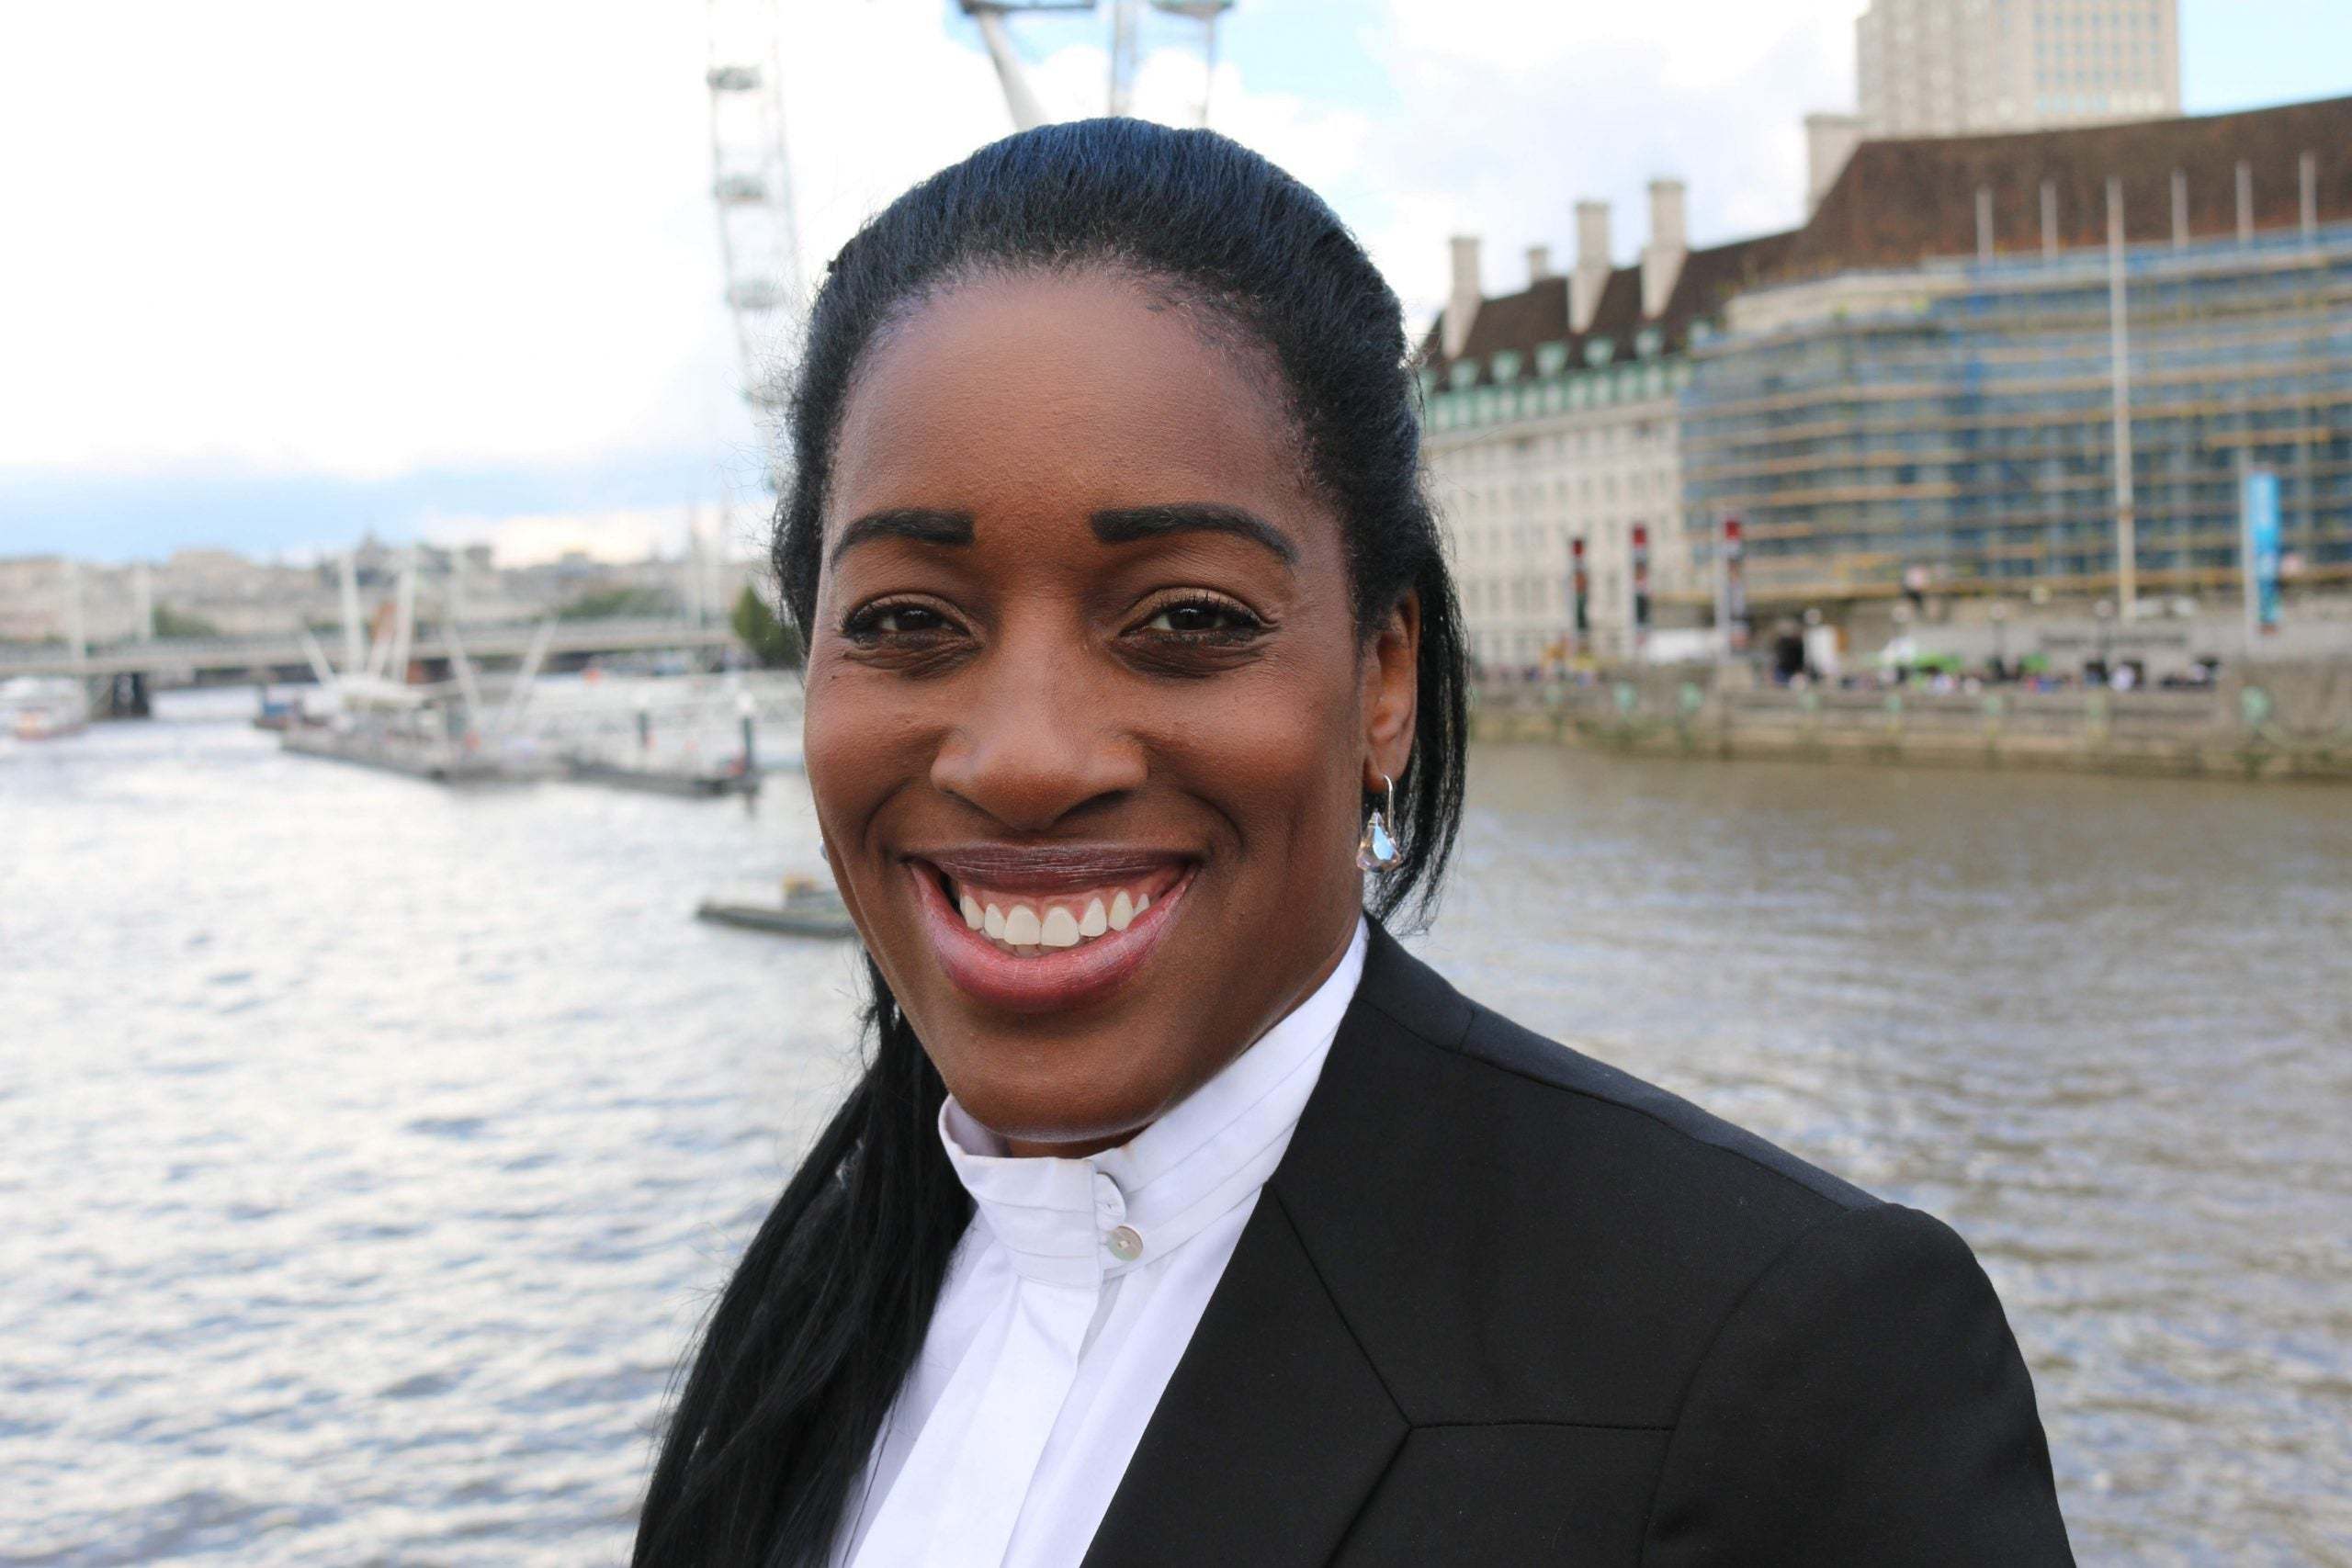 Kate Osamor MP: Jeremy Corbyn represents the working man and woman